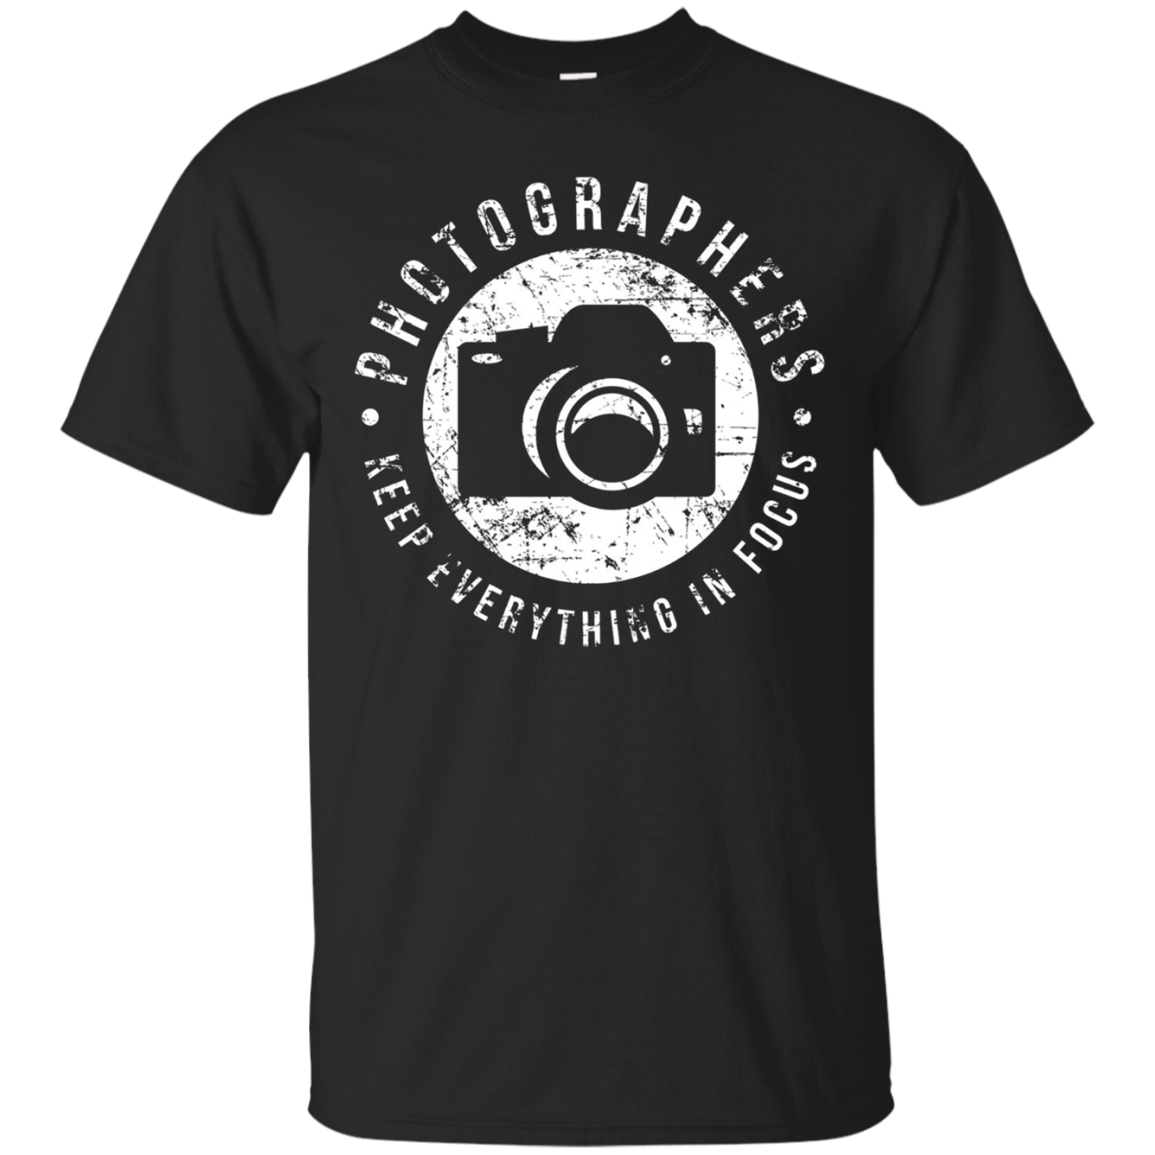 Photographers Keep Everything Focus T Shirt Funny Photo Gift